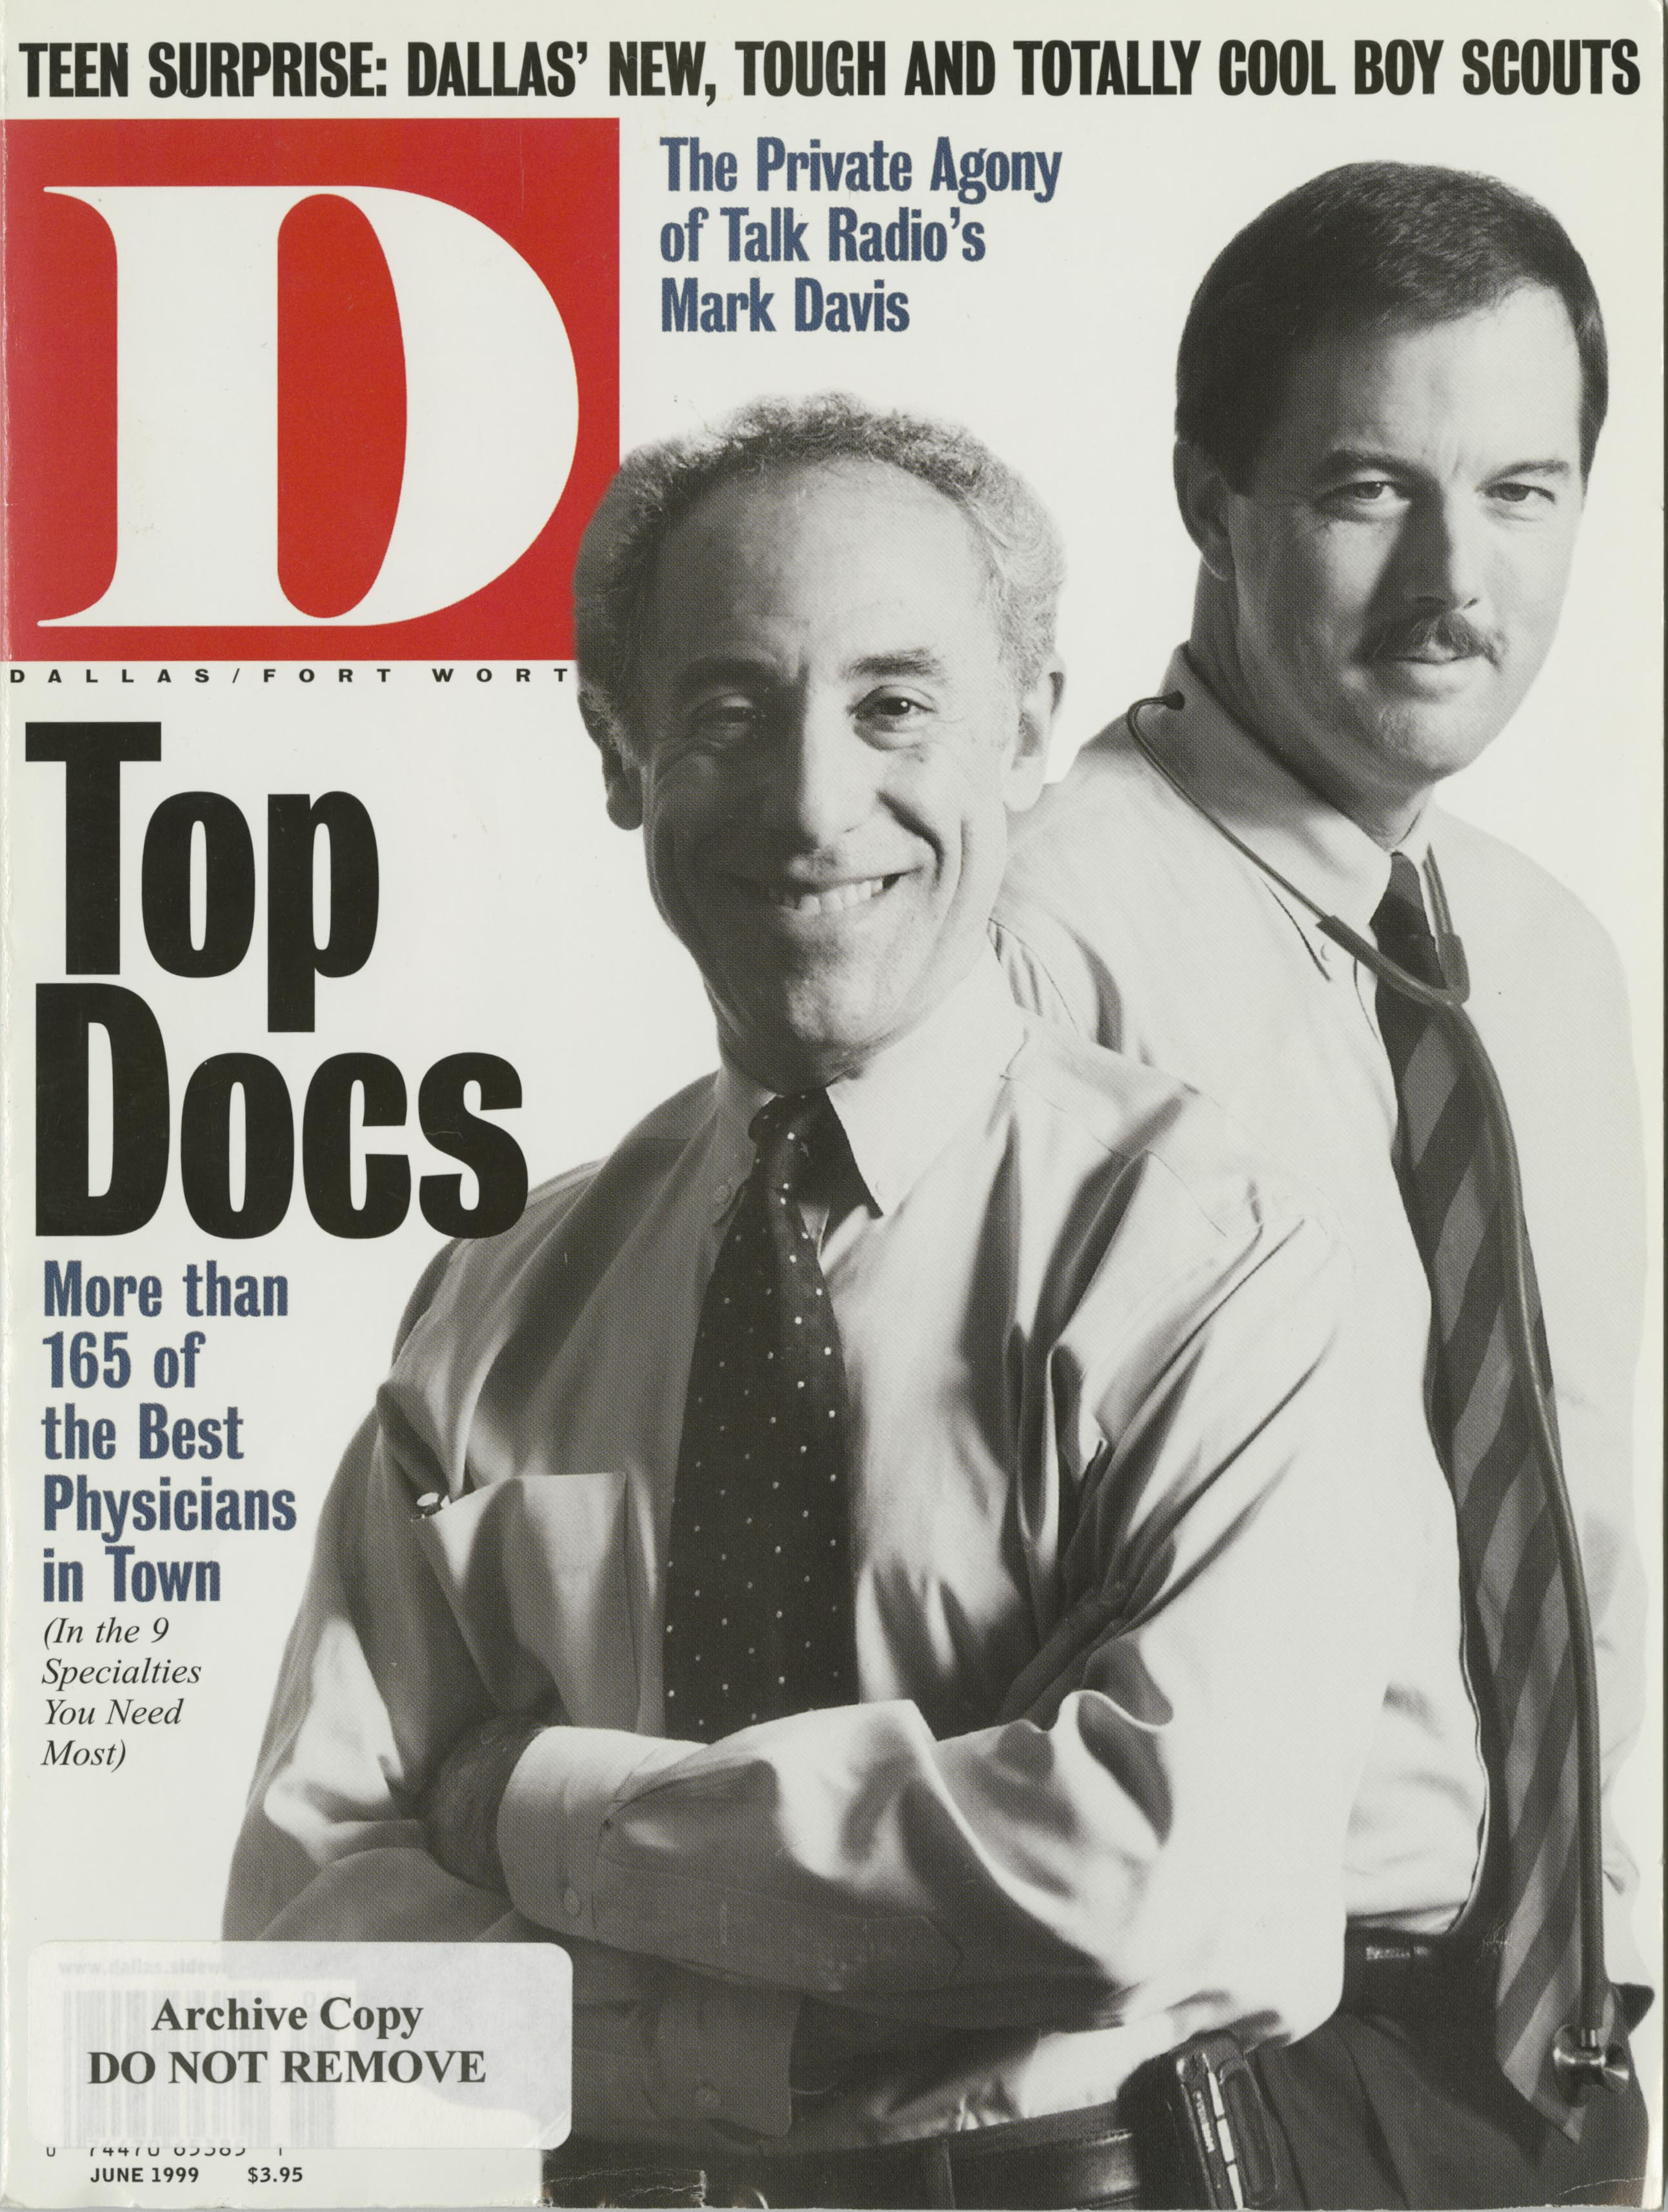 June 1999 cover